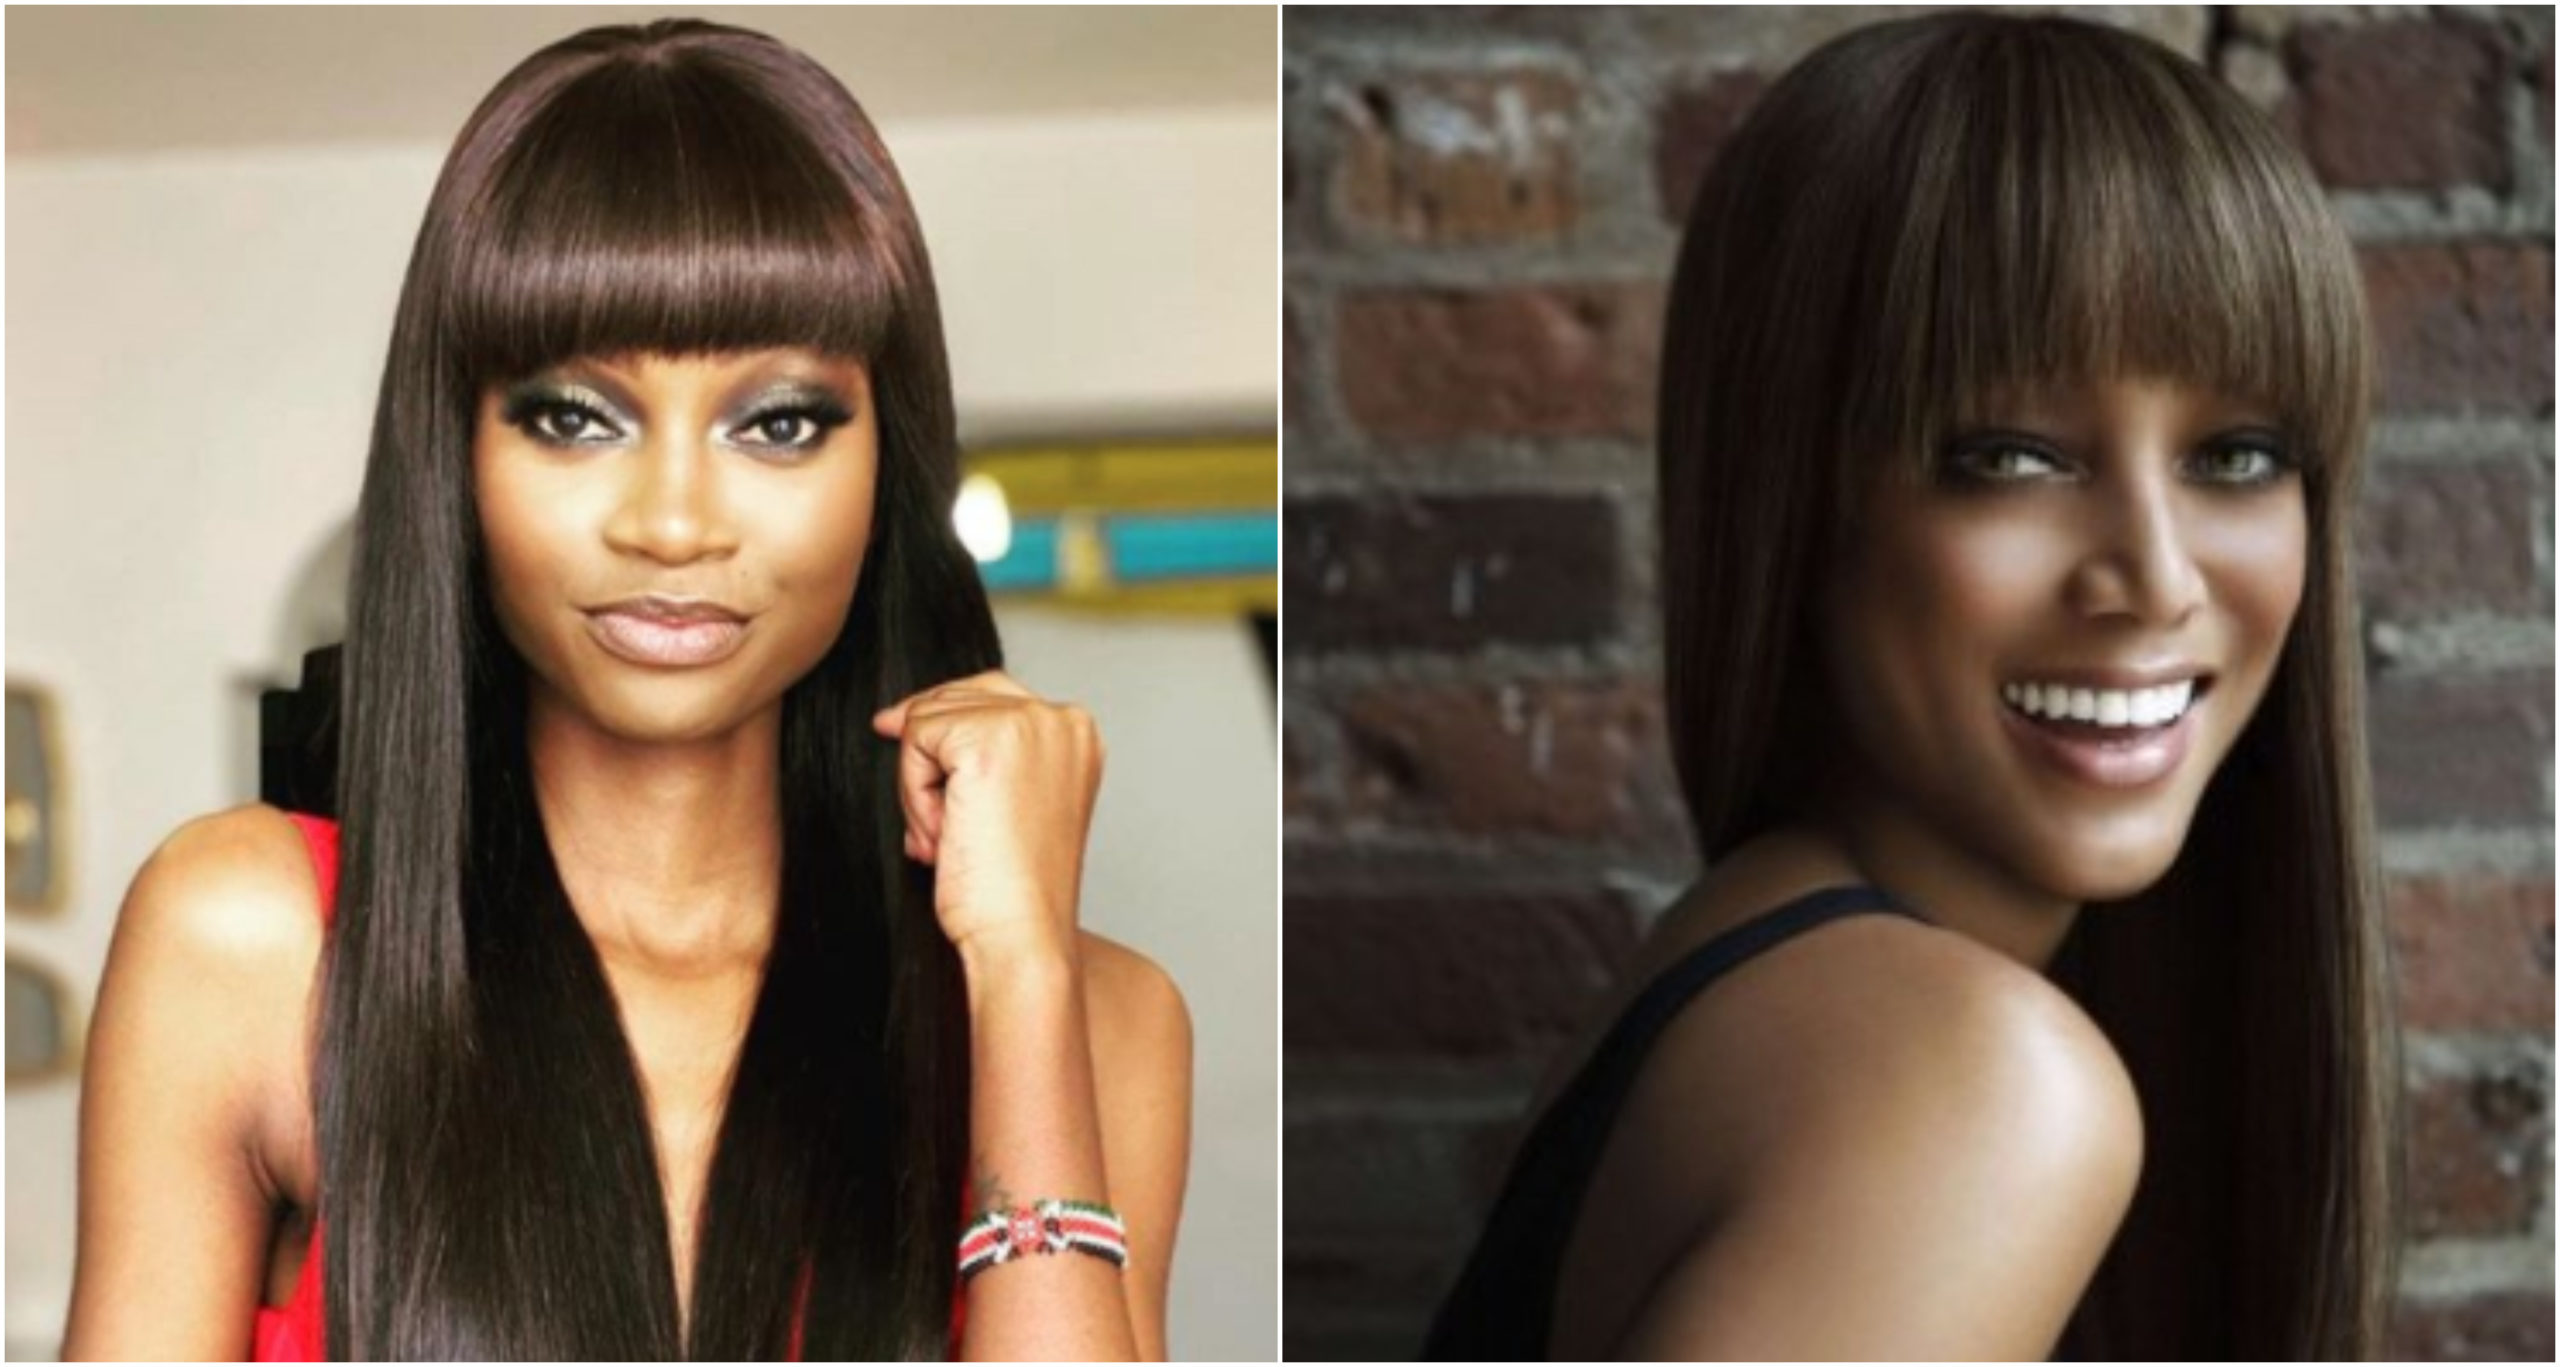 Kenyan radio host draws Tyra Bank's attention after showcasing their close resemblance